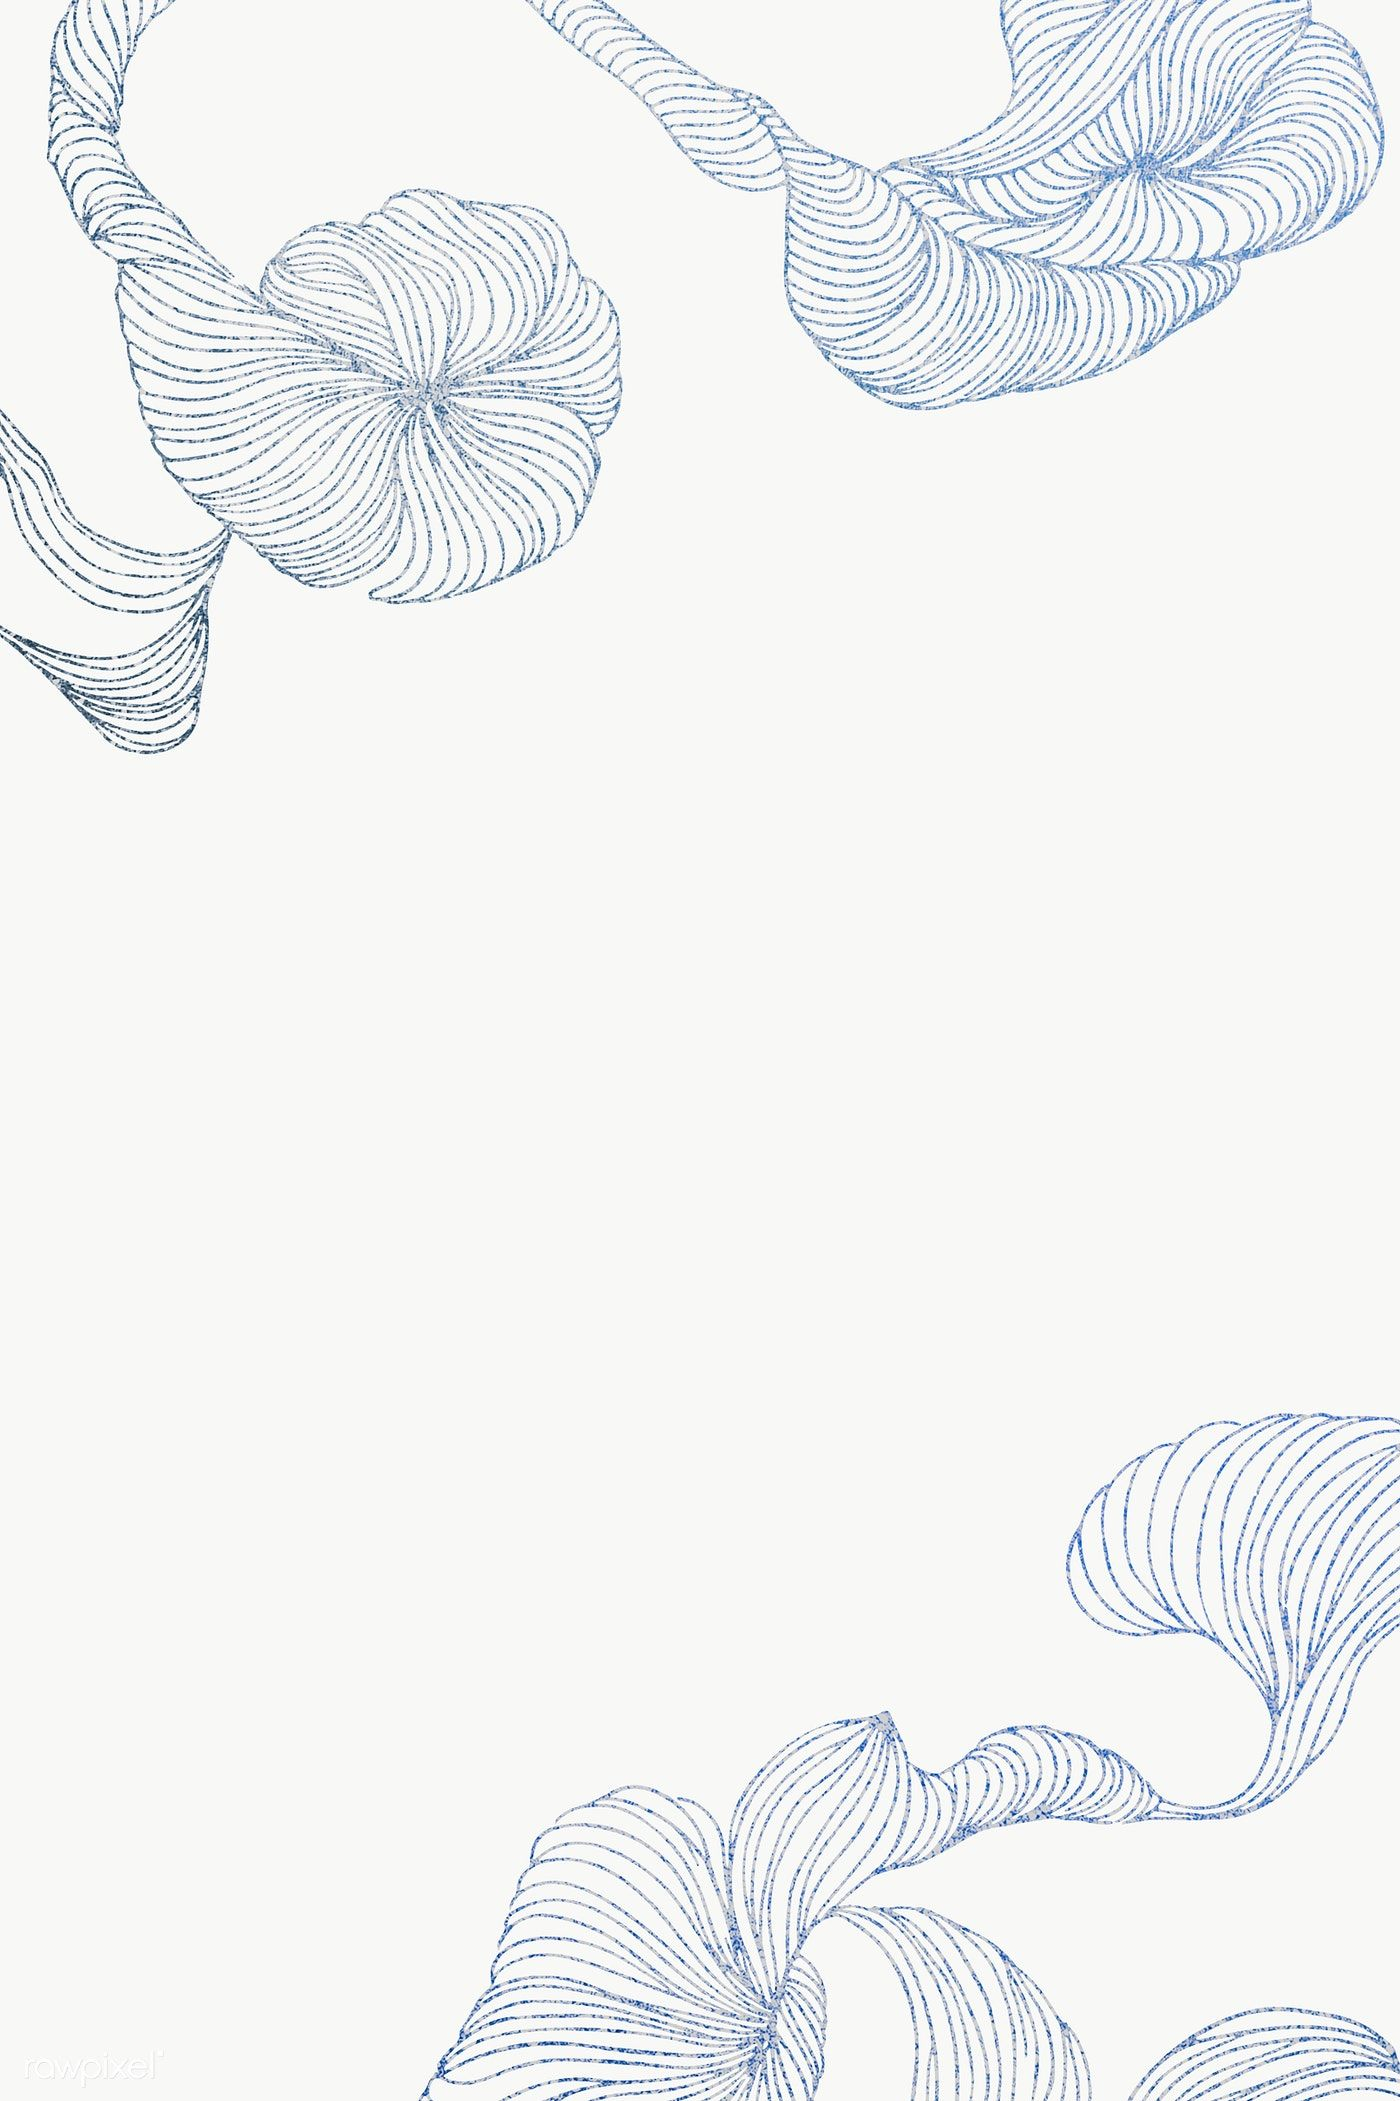 Shiny Swirly Abstract Art Design Transparent Png Premium Image By Rawpixel Com In 2020 Phone Wallpaper Patterns Watercolor Wallpaper Iphone Abstract Art Wallpaper